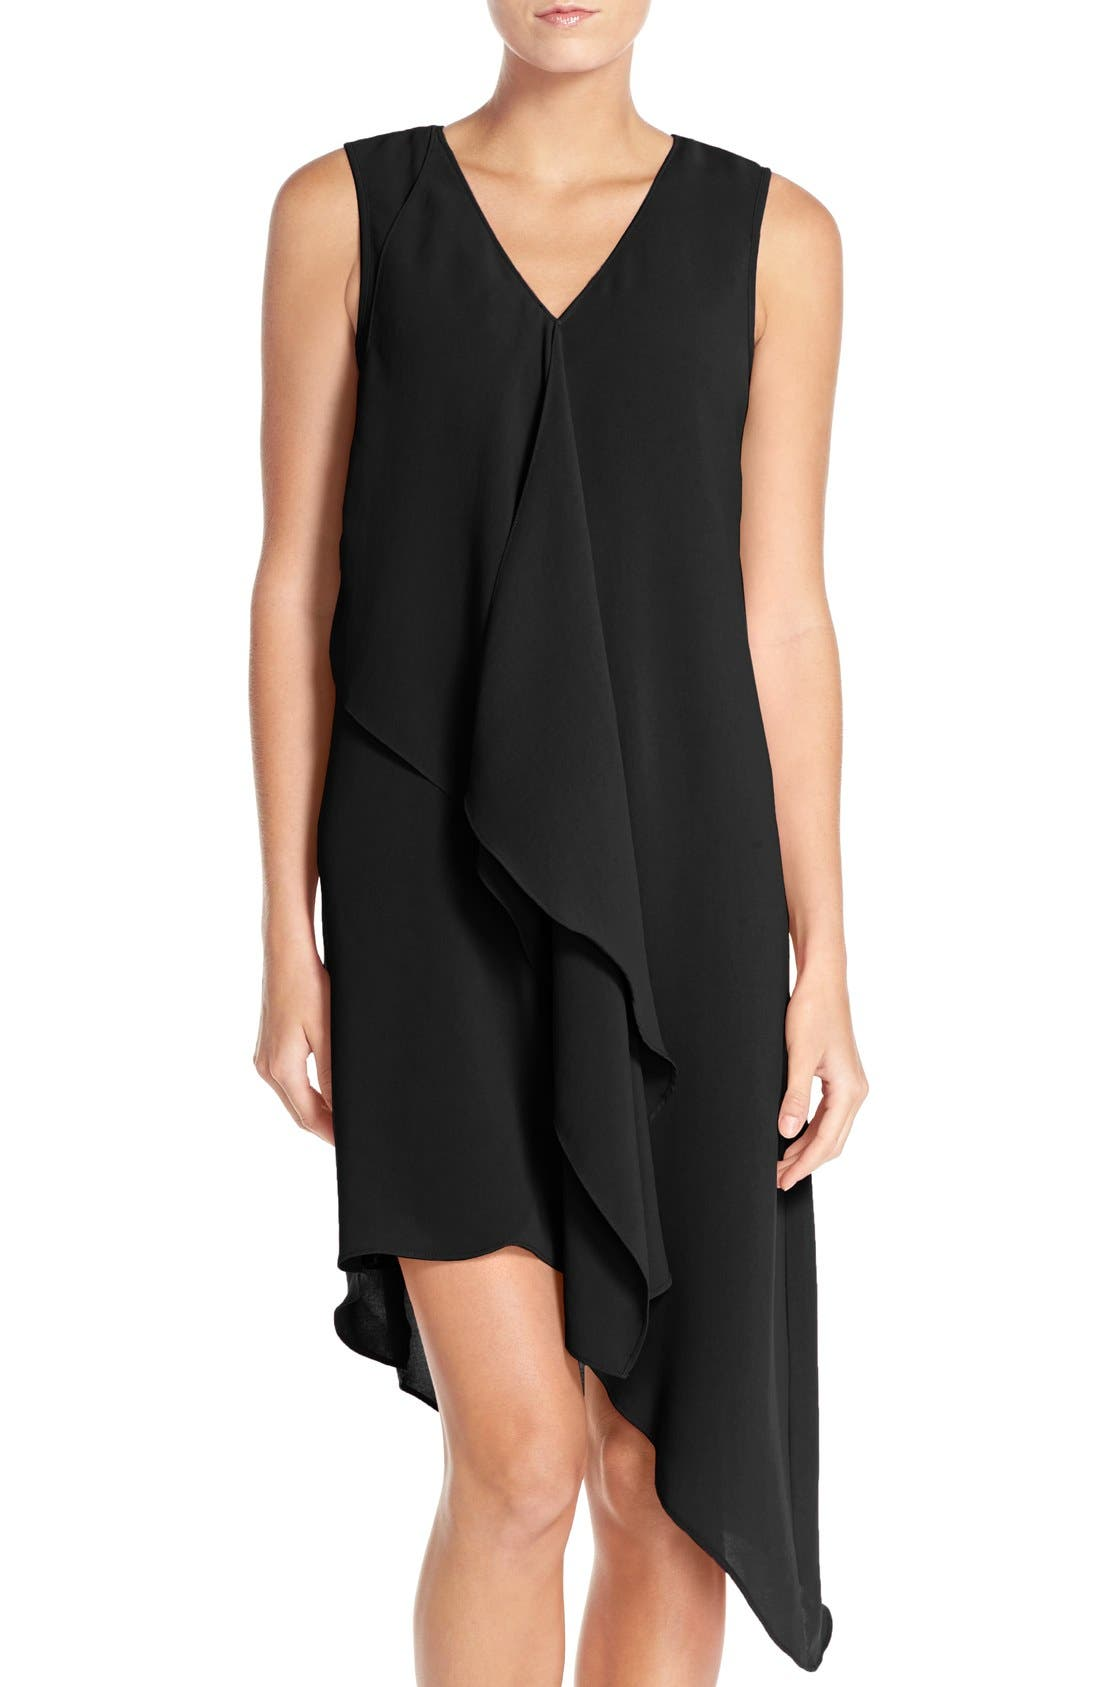 Main Image - Adrianna Papell Ruffle Front Crepe High/Low Dress (Regular & Petite)